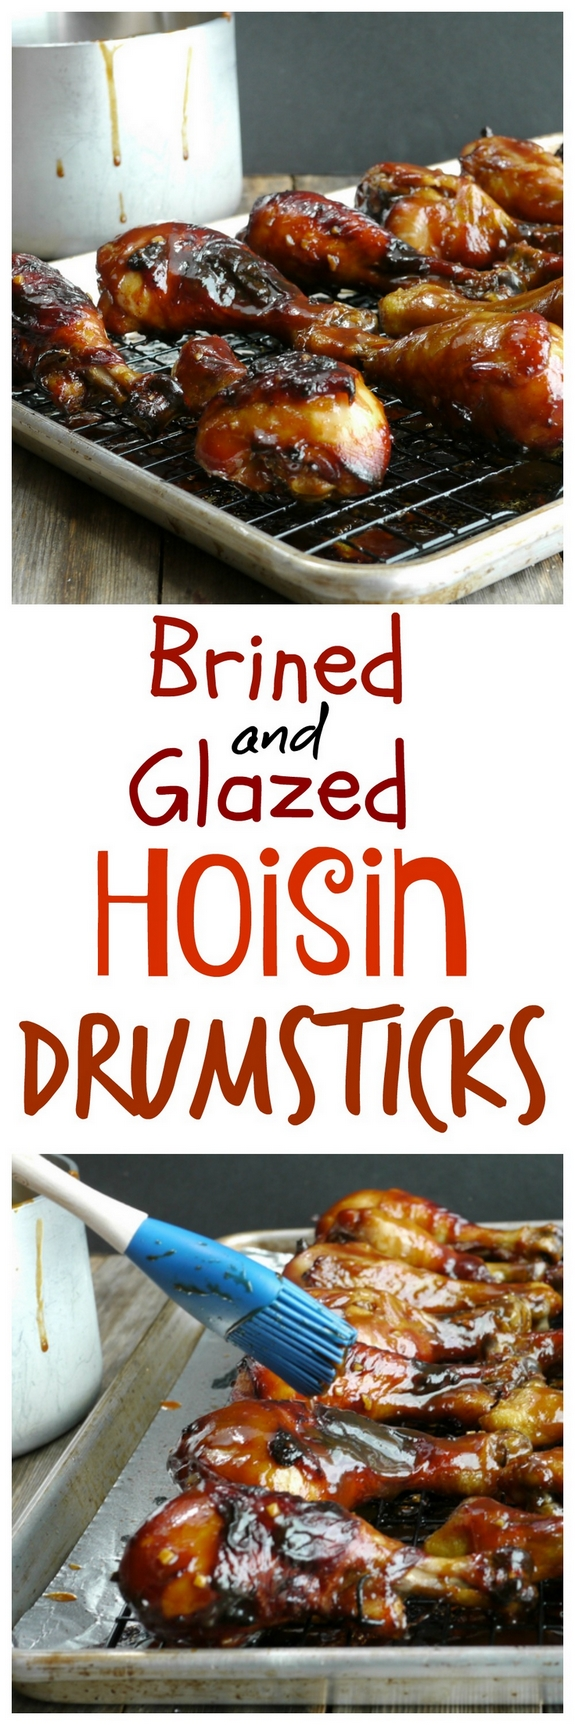 Brined and Glazed Hoisin Drumsticks